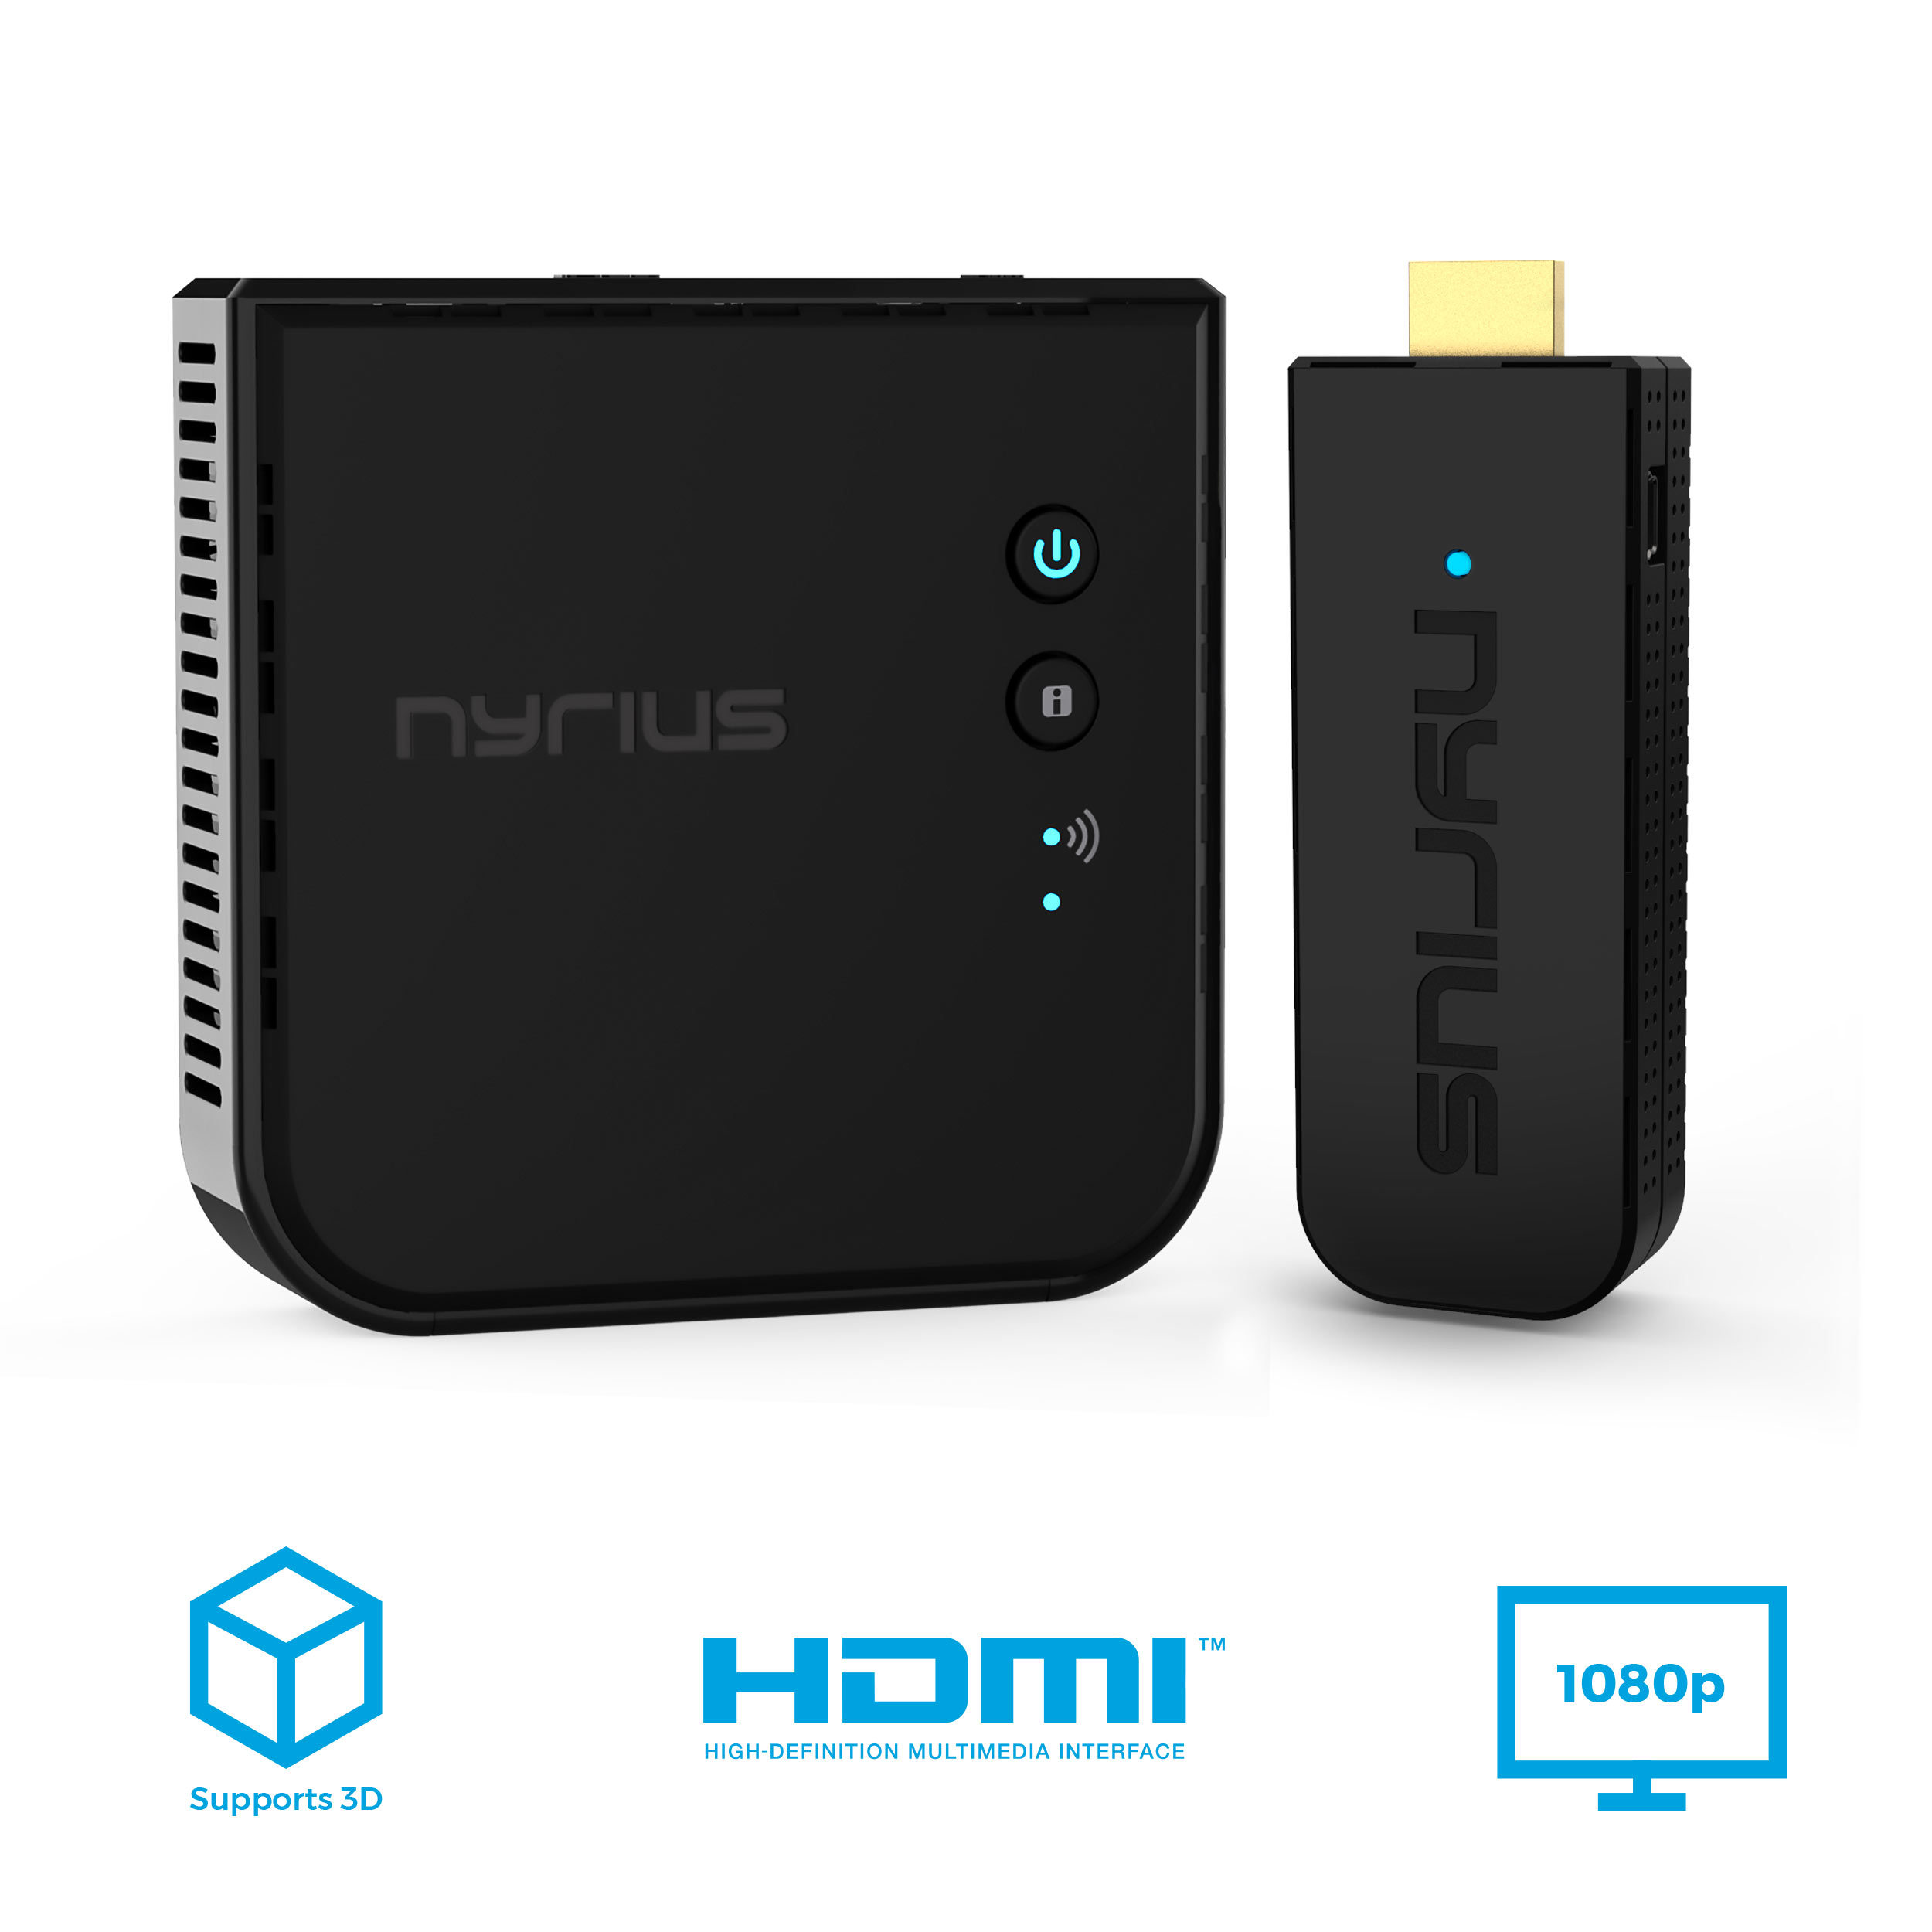 Nyrius ARIES Pro Wireless HDMI Transmitter and Receiver To Stream HD 1080p 3D Video From Laptop, PC, Cable, Netflix, YouTube, PS4, Xbox 1, Drones, Pro Camera, To HDTV/Projector/Monitor (NPCS600)